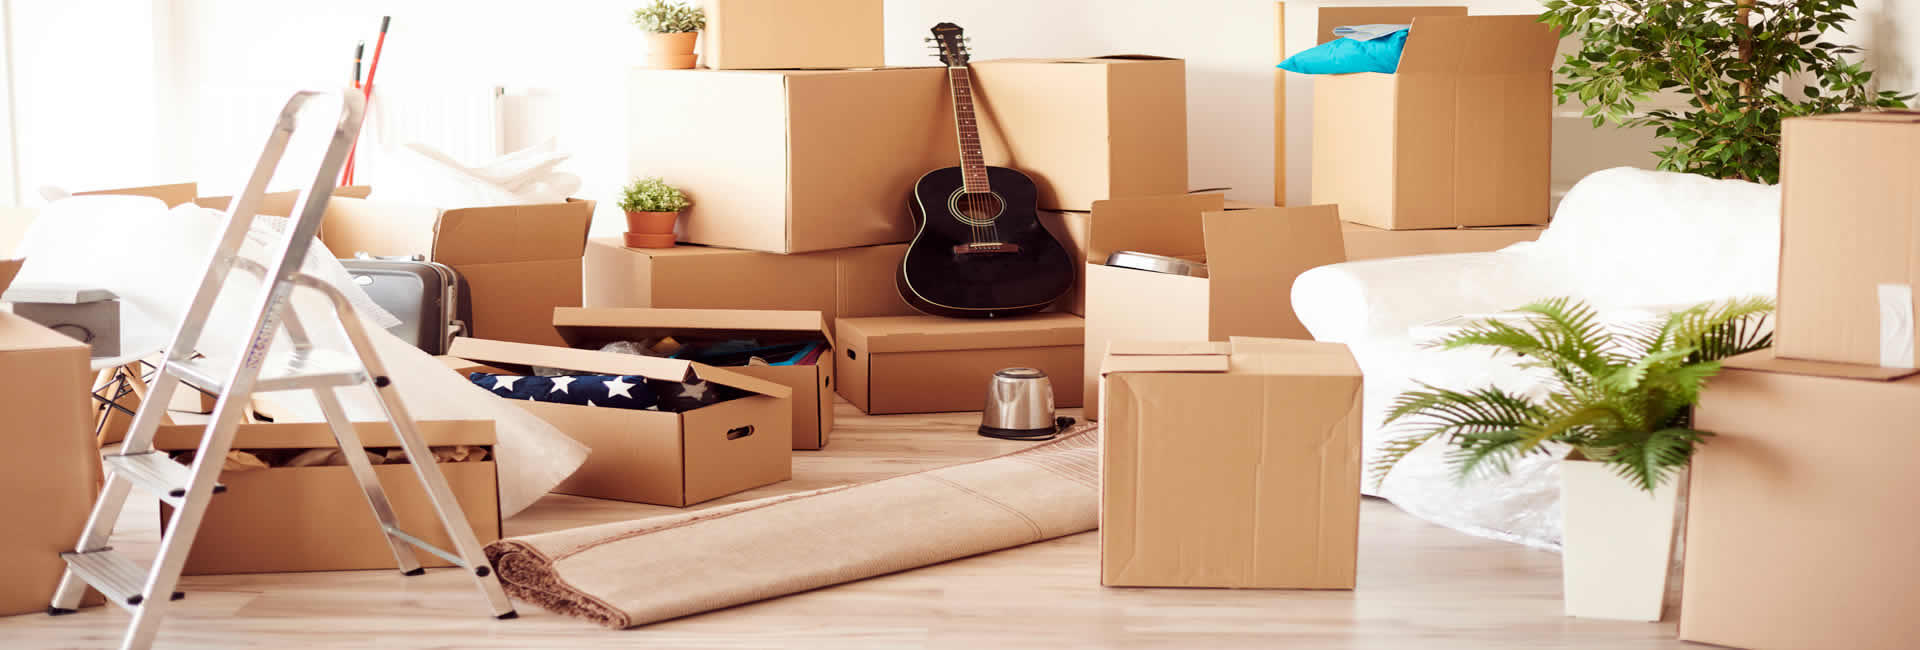 one man light removals and rubbish disposal services